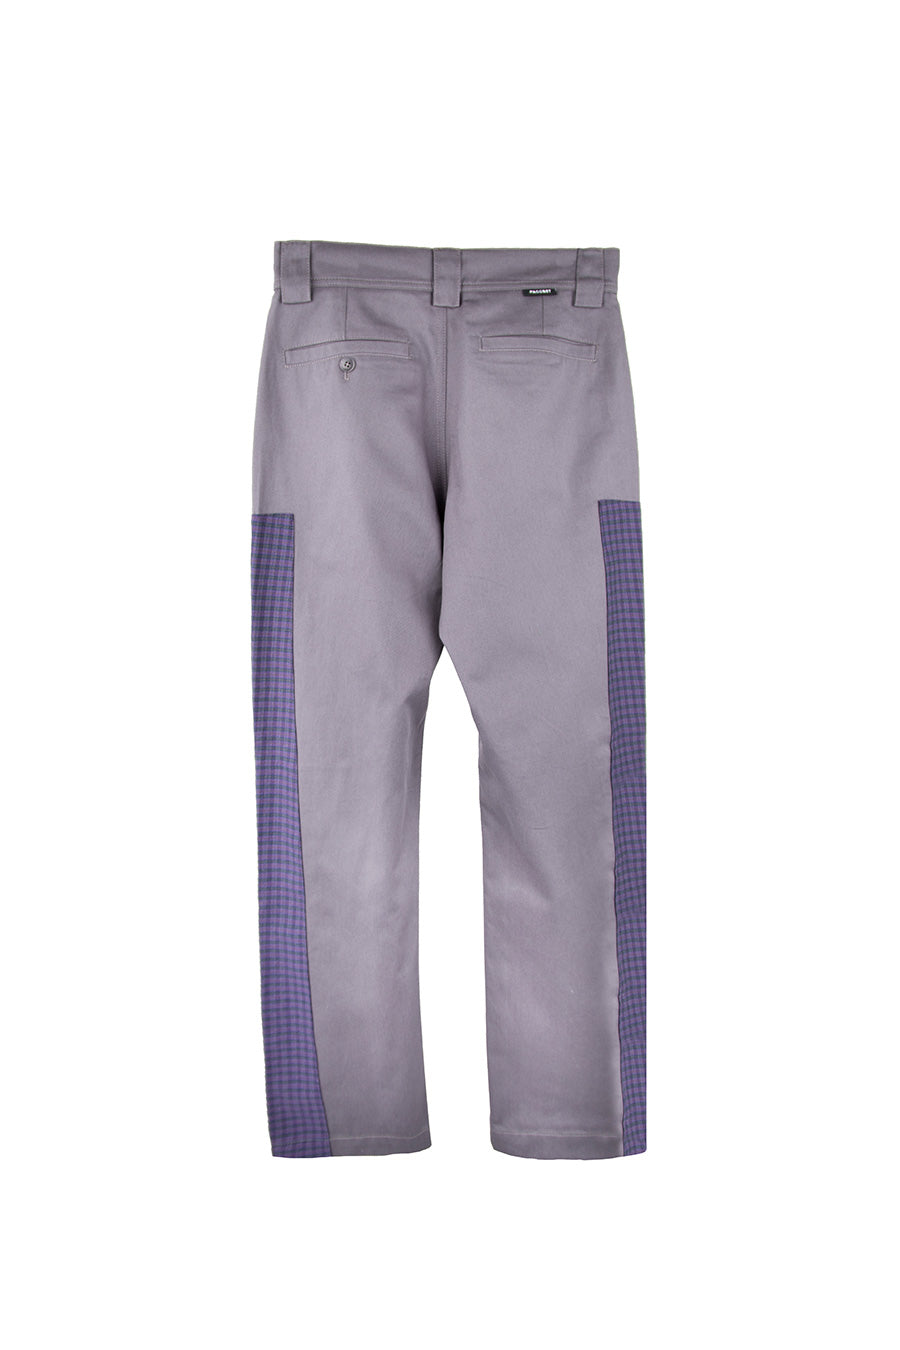 Rassvet - Grey Men's Pants | 1032 SPACE